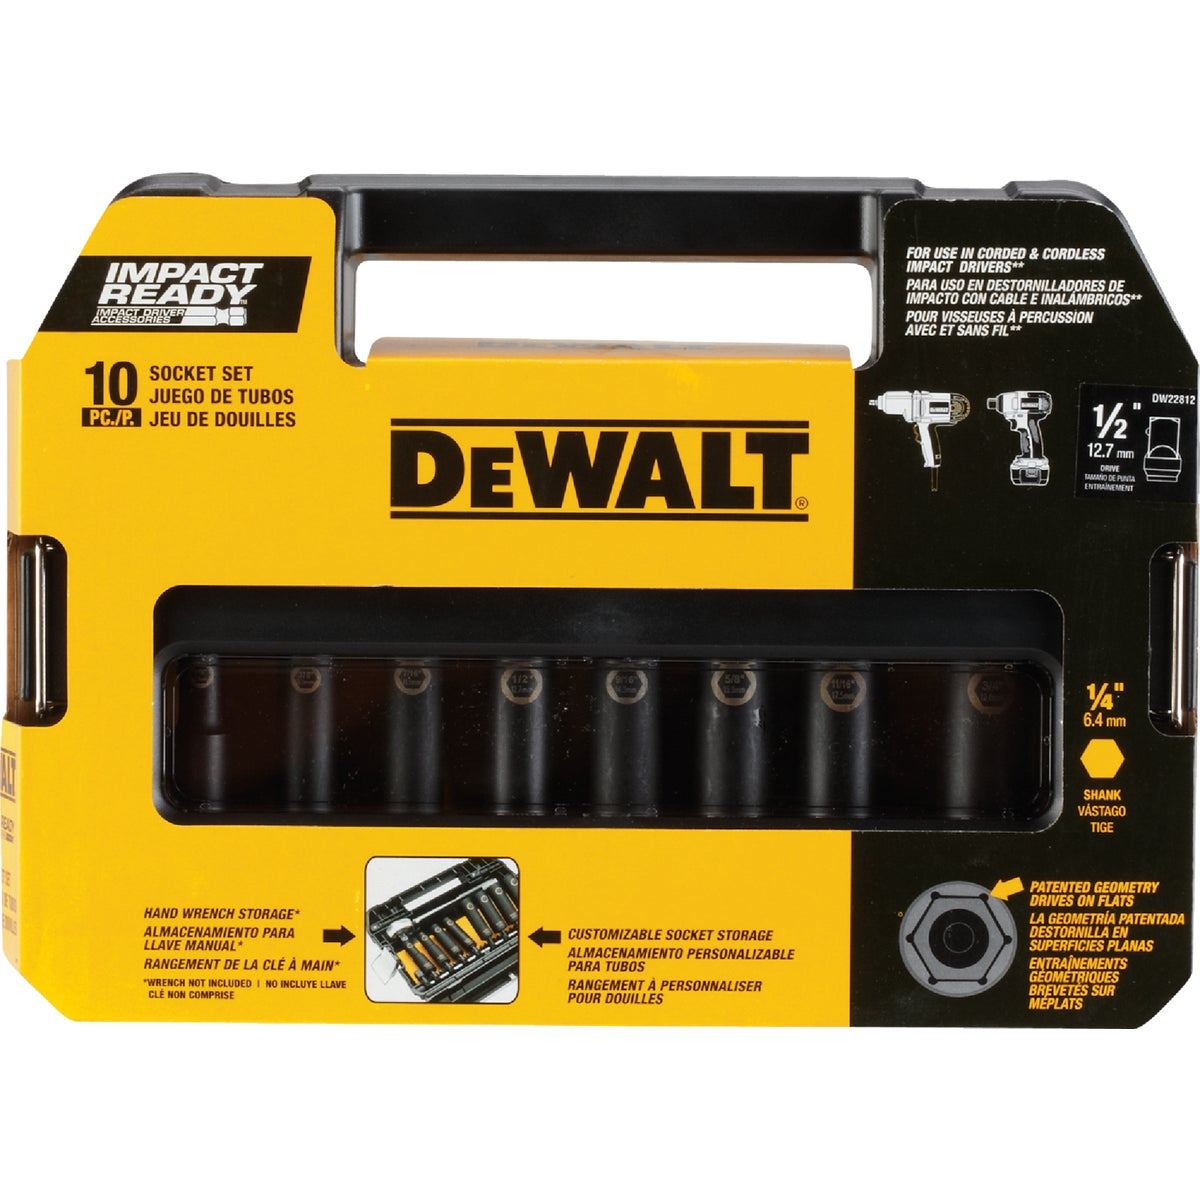 "10PC 1/2"" DR IMPACT SET - DW22812 by DeWalt"